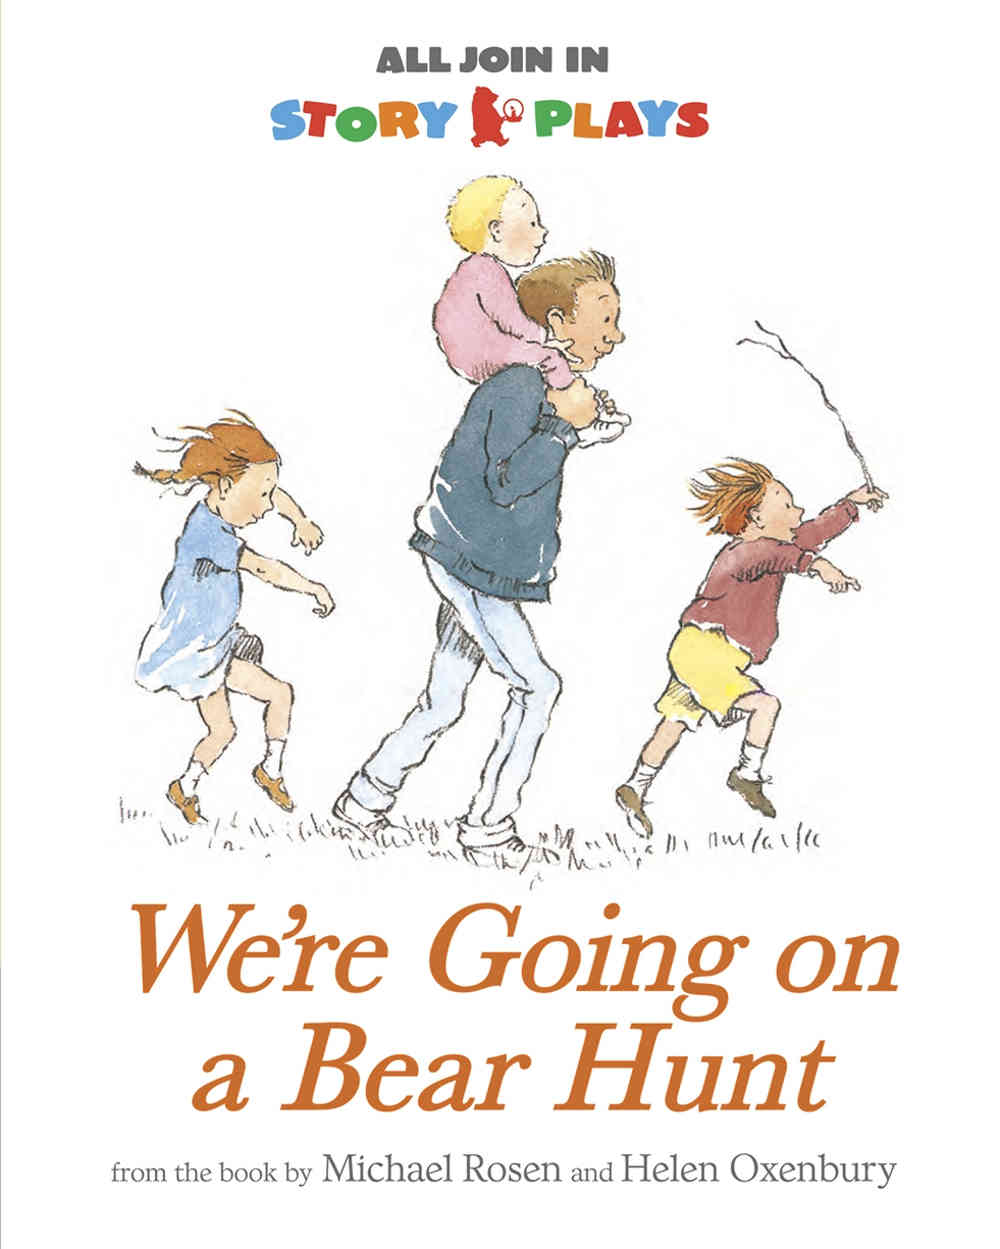 we're going on a bear hunt story plays